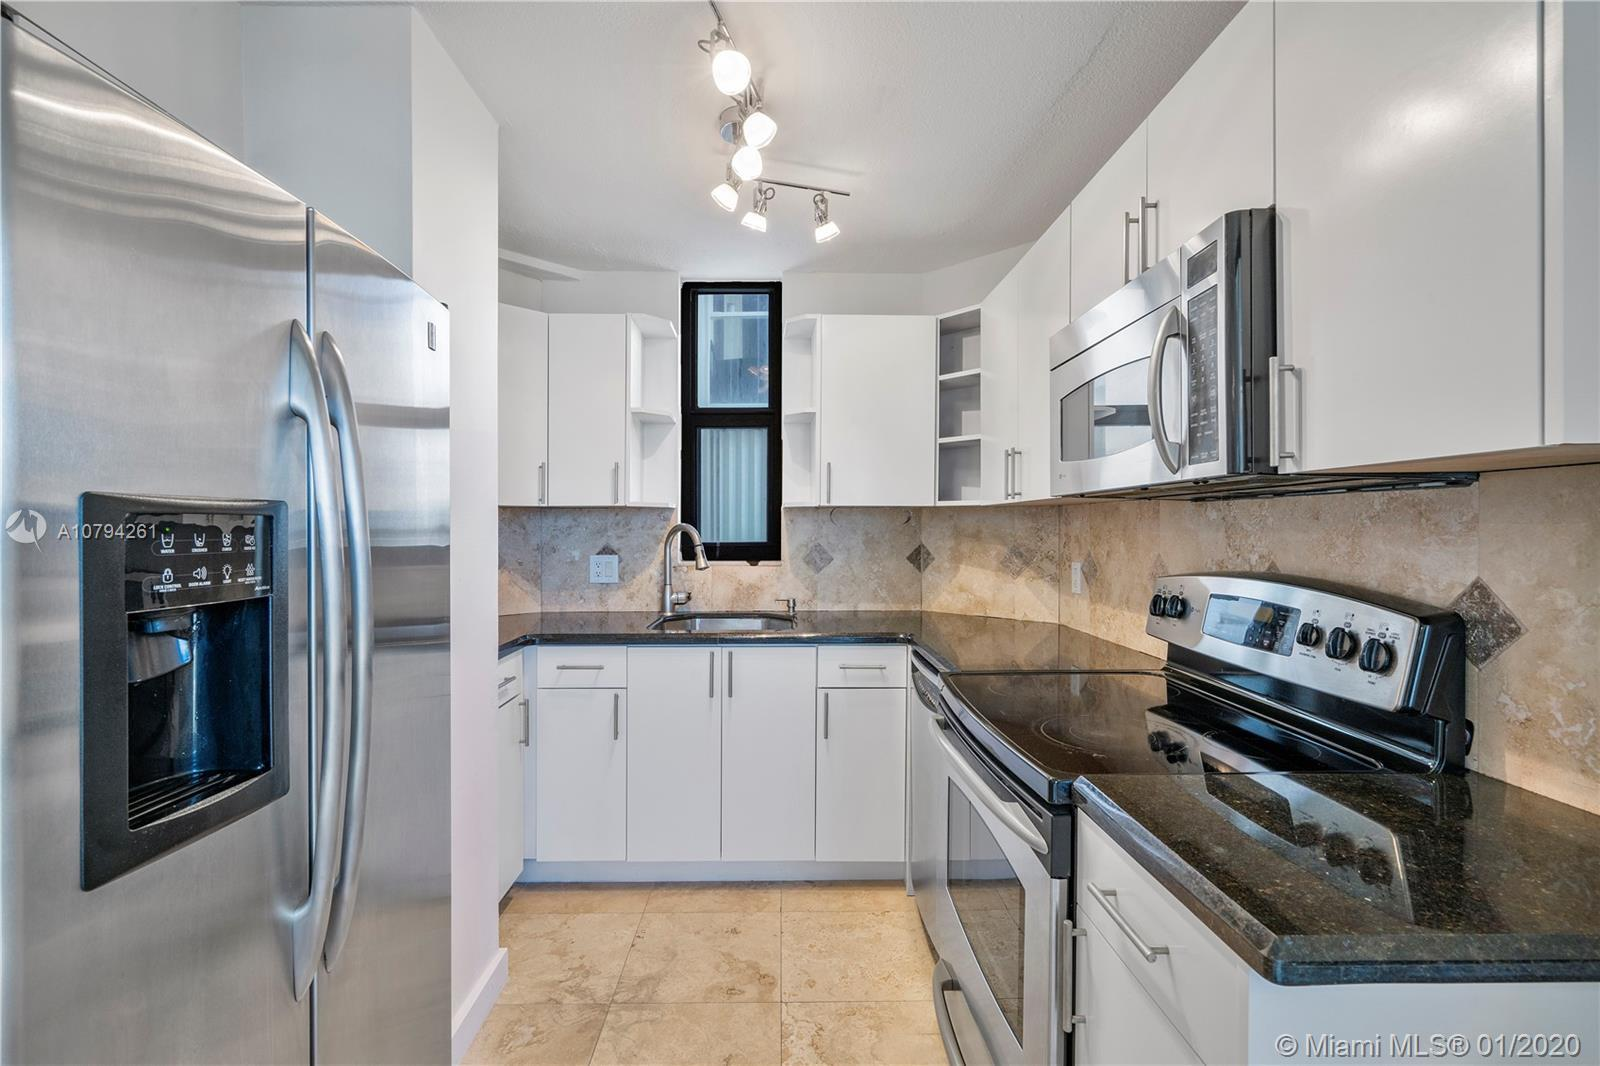 COMPLETELY REMODELED INCLUDING UPDATED BATH, KITCHEN WITH STAINLESS STEEL APPLIANCES, IMPACT WINDOWS